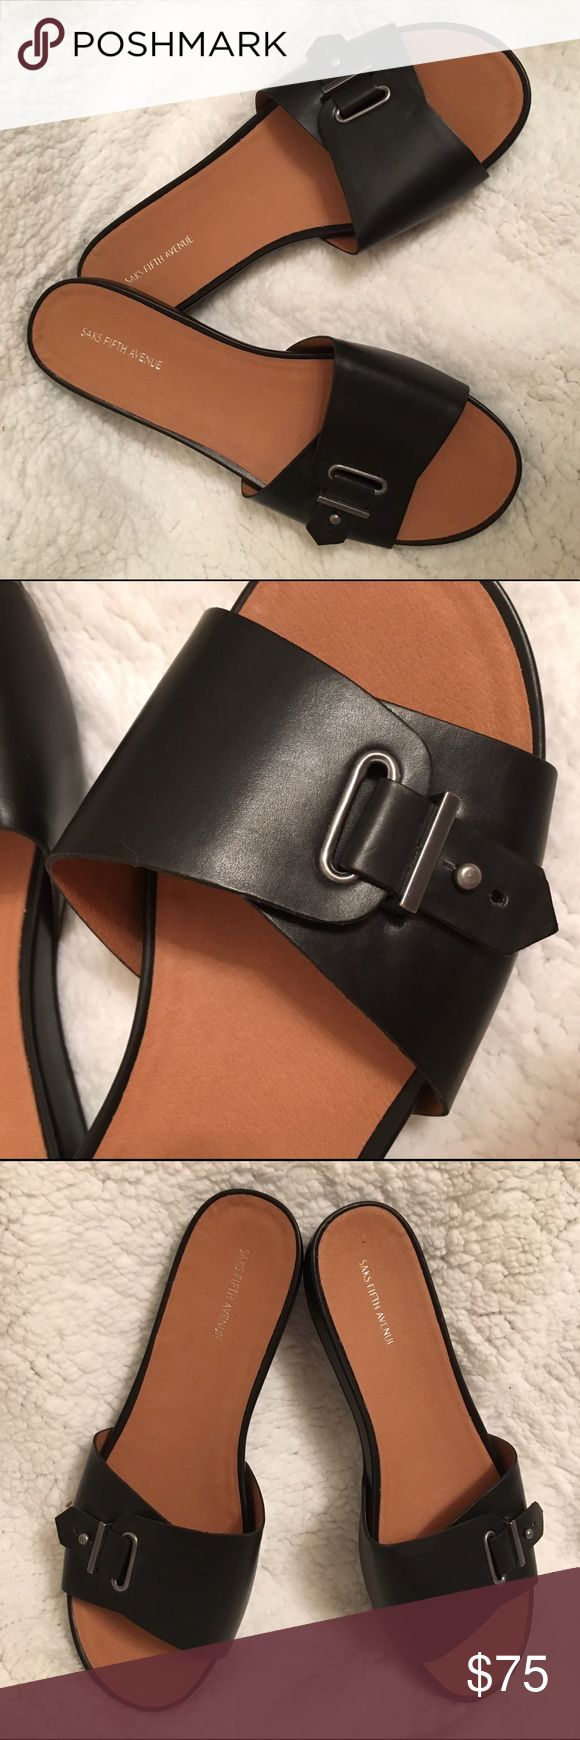 New black sandals, Saks Fifth Avenue, size 11 Saks Fifth Avenue brand. Beautiful black sandals with a buckle. Size 11. Never been worn. Saks Fifth Avenue Shoes Sandals